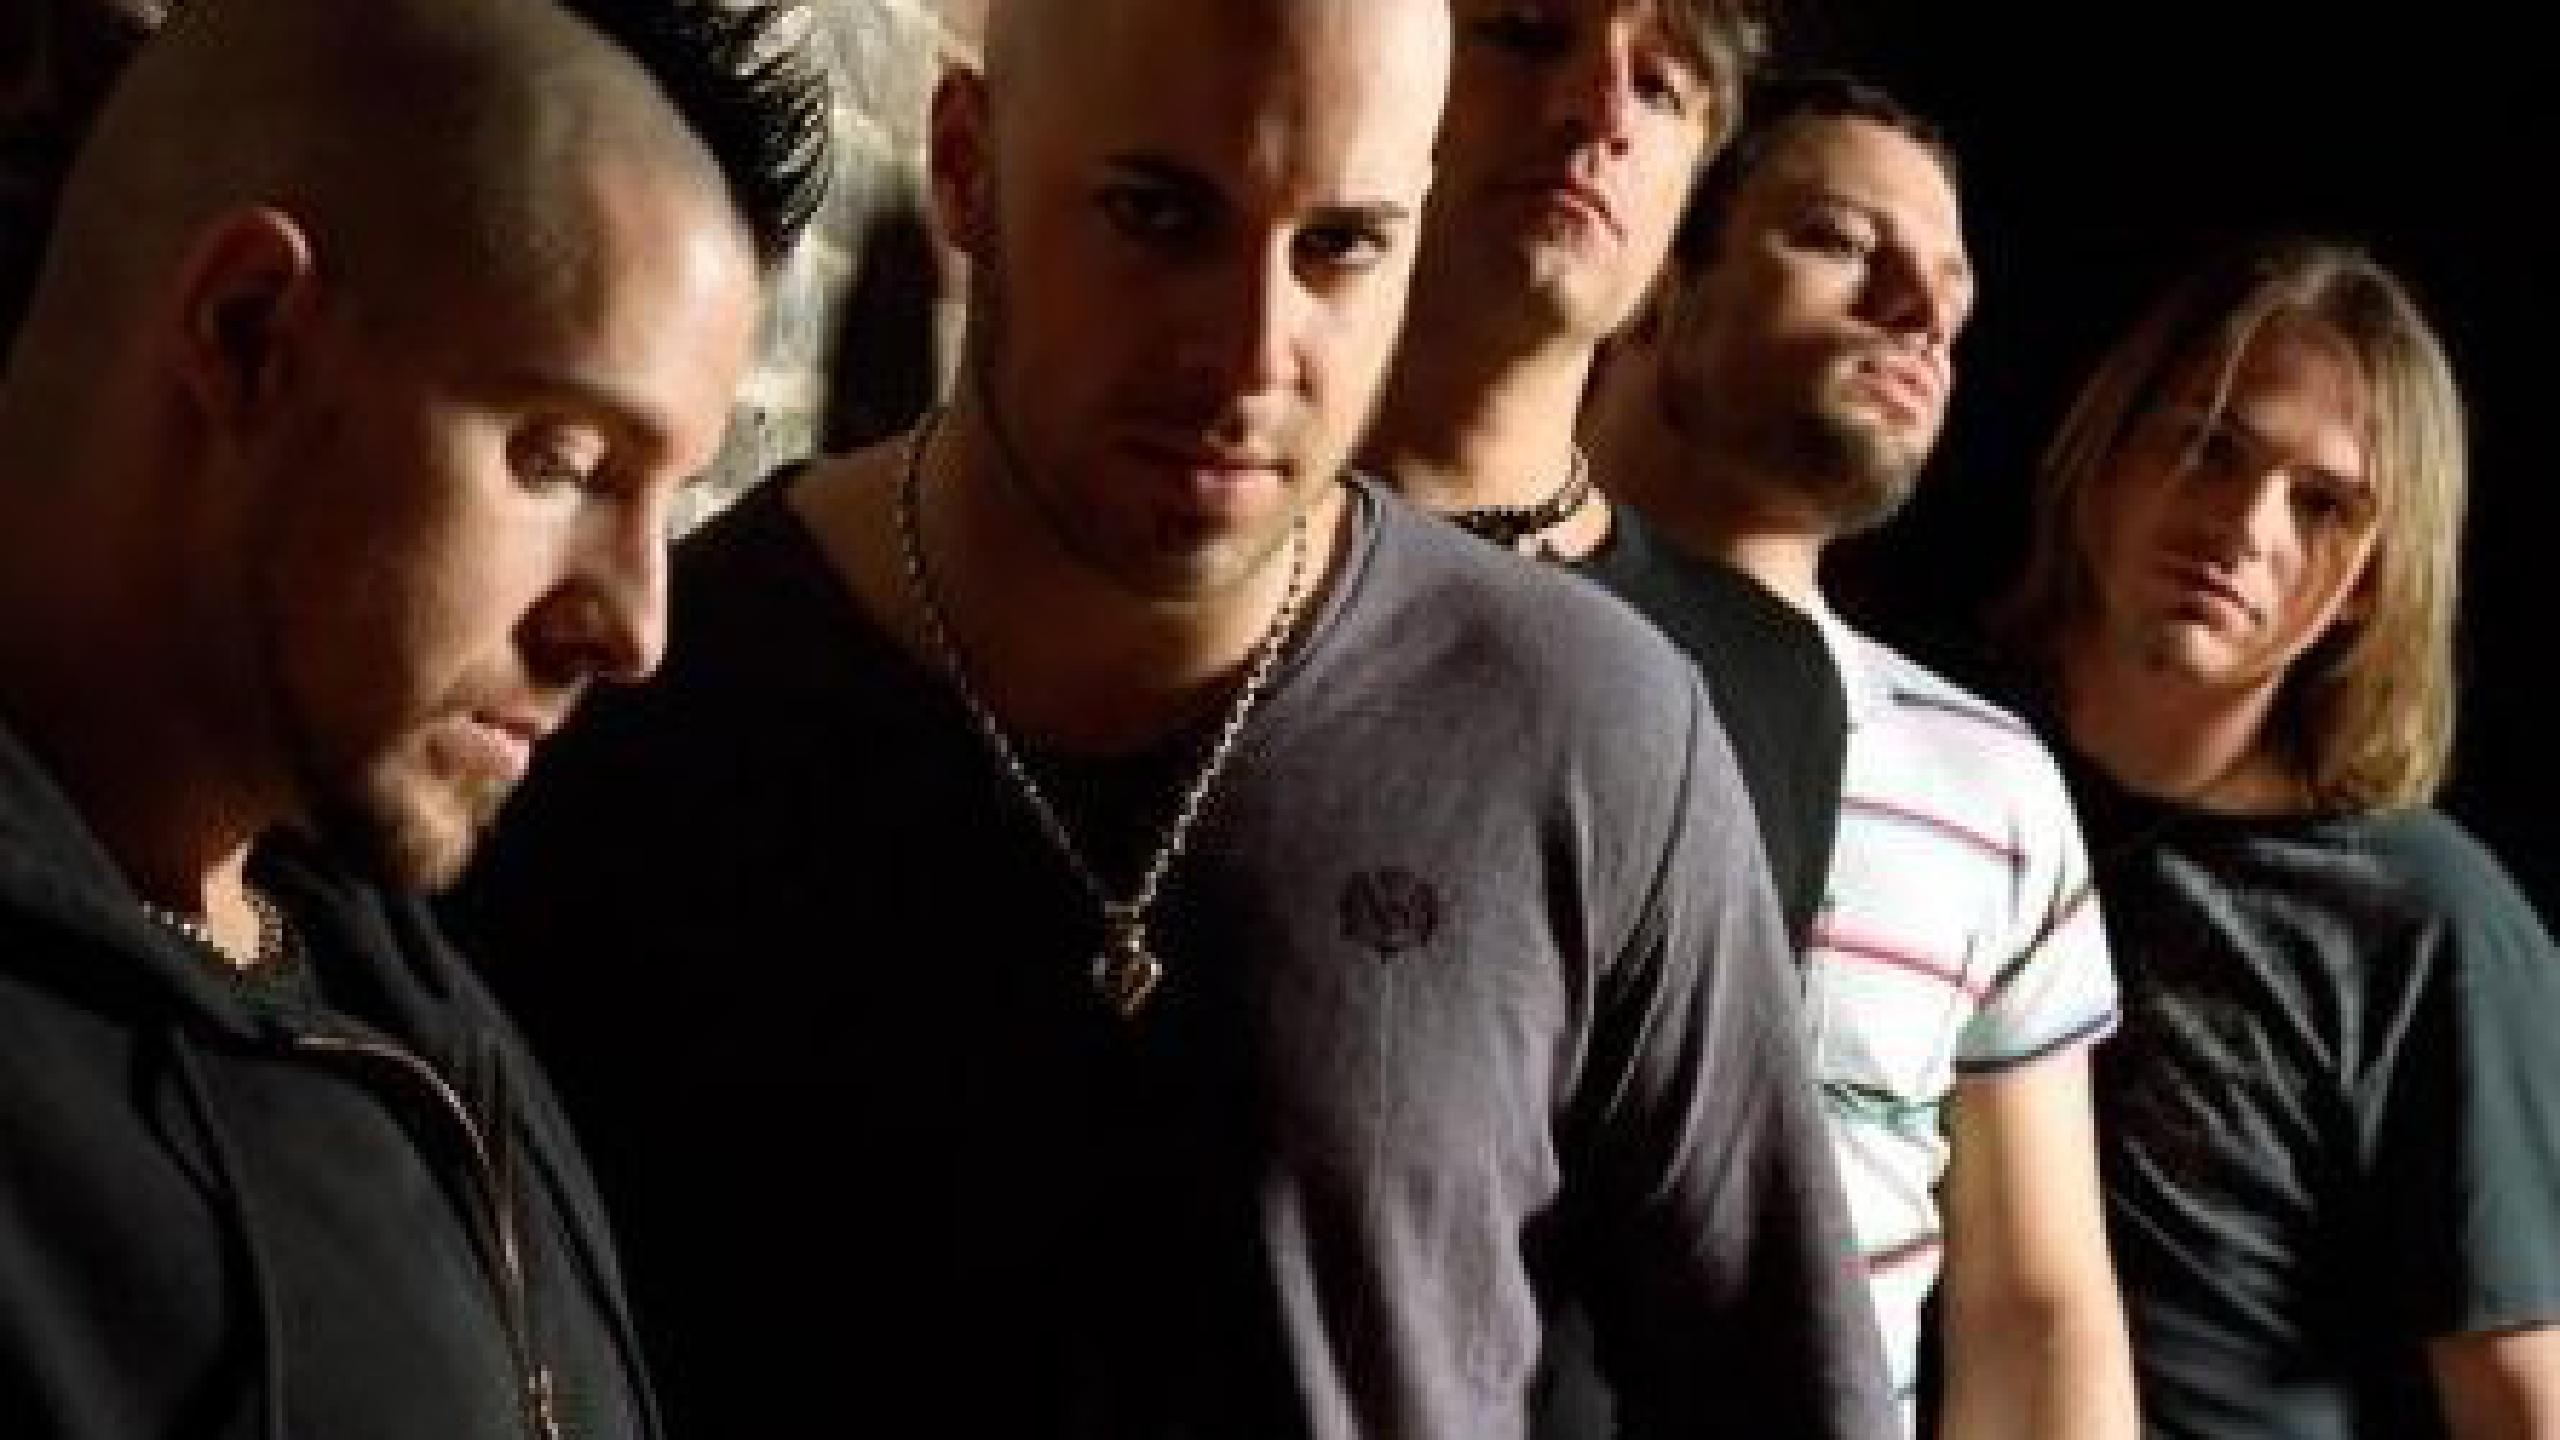 Chris Daughtry Tour 2020 Daughtry tour dates 2019 2020. Daughtry tickets and concerts